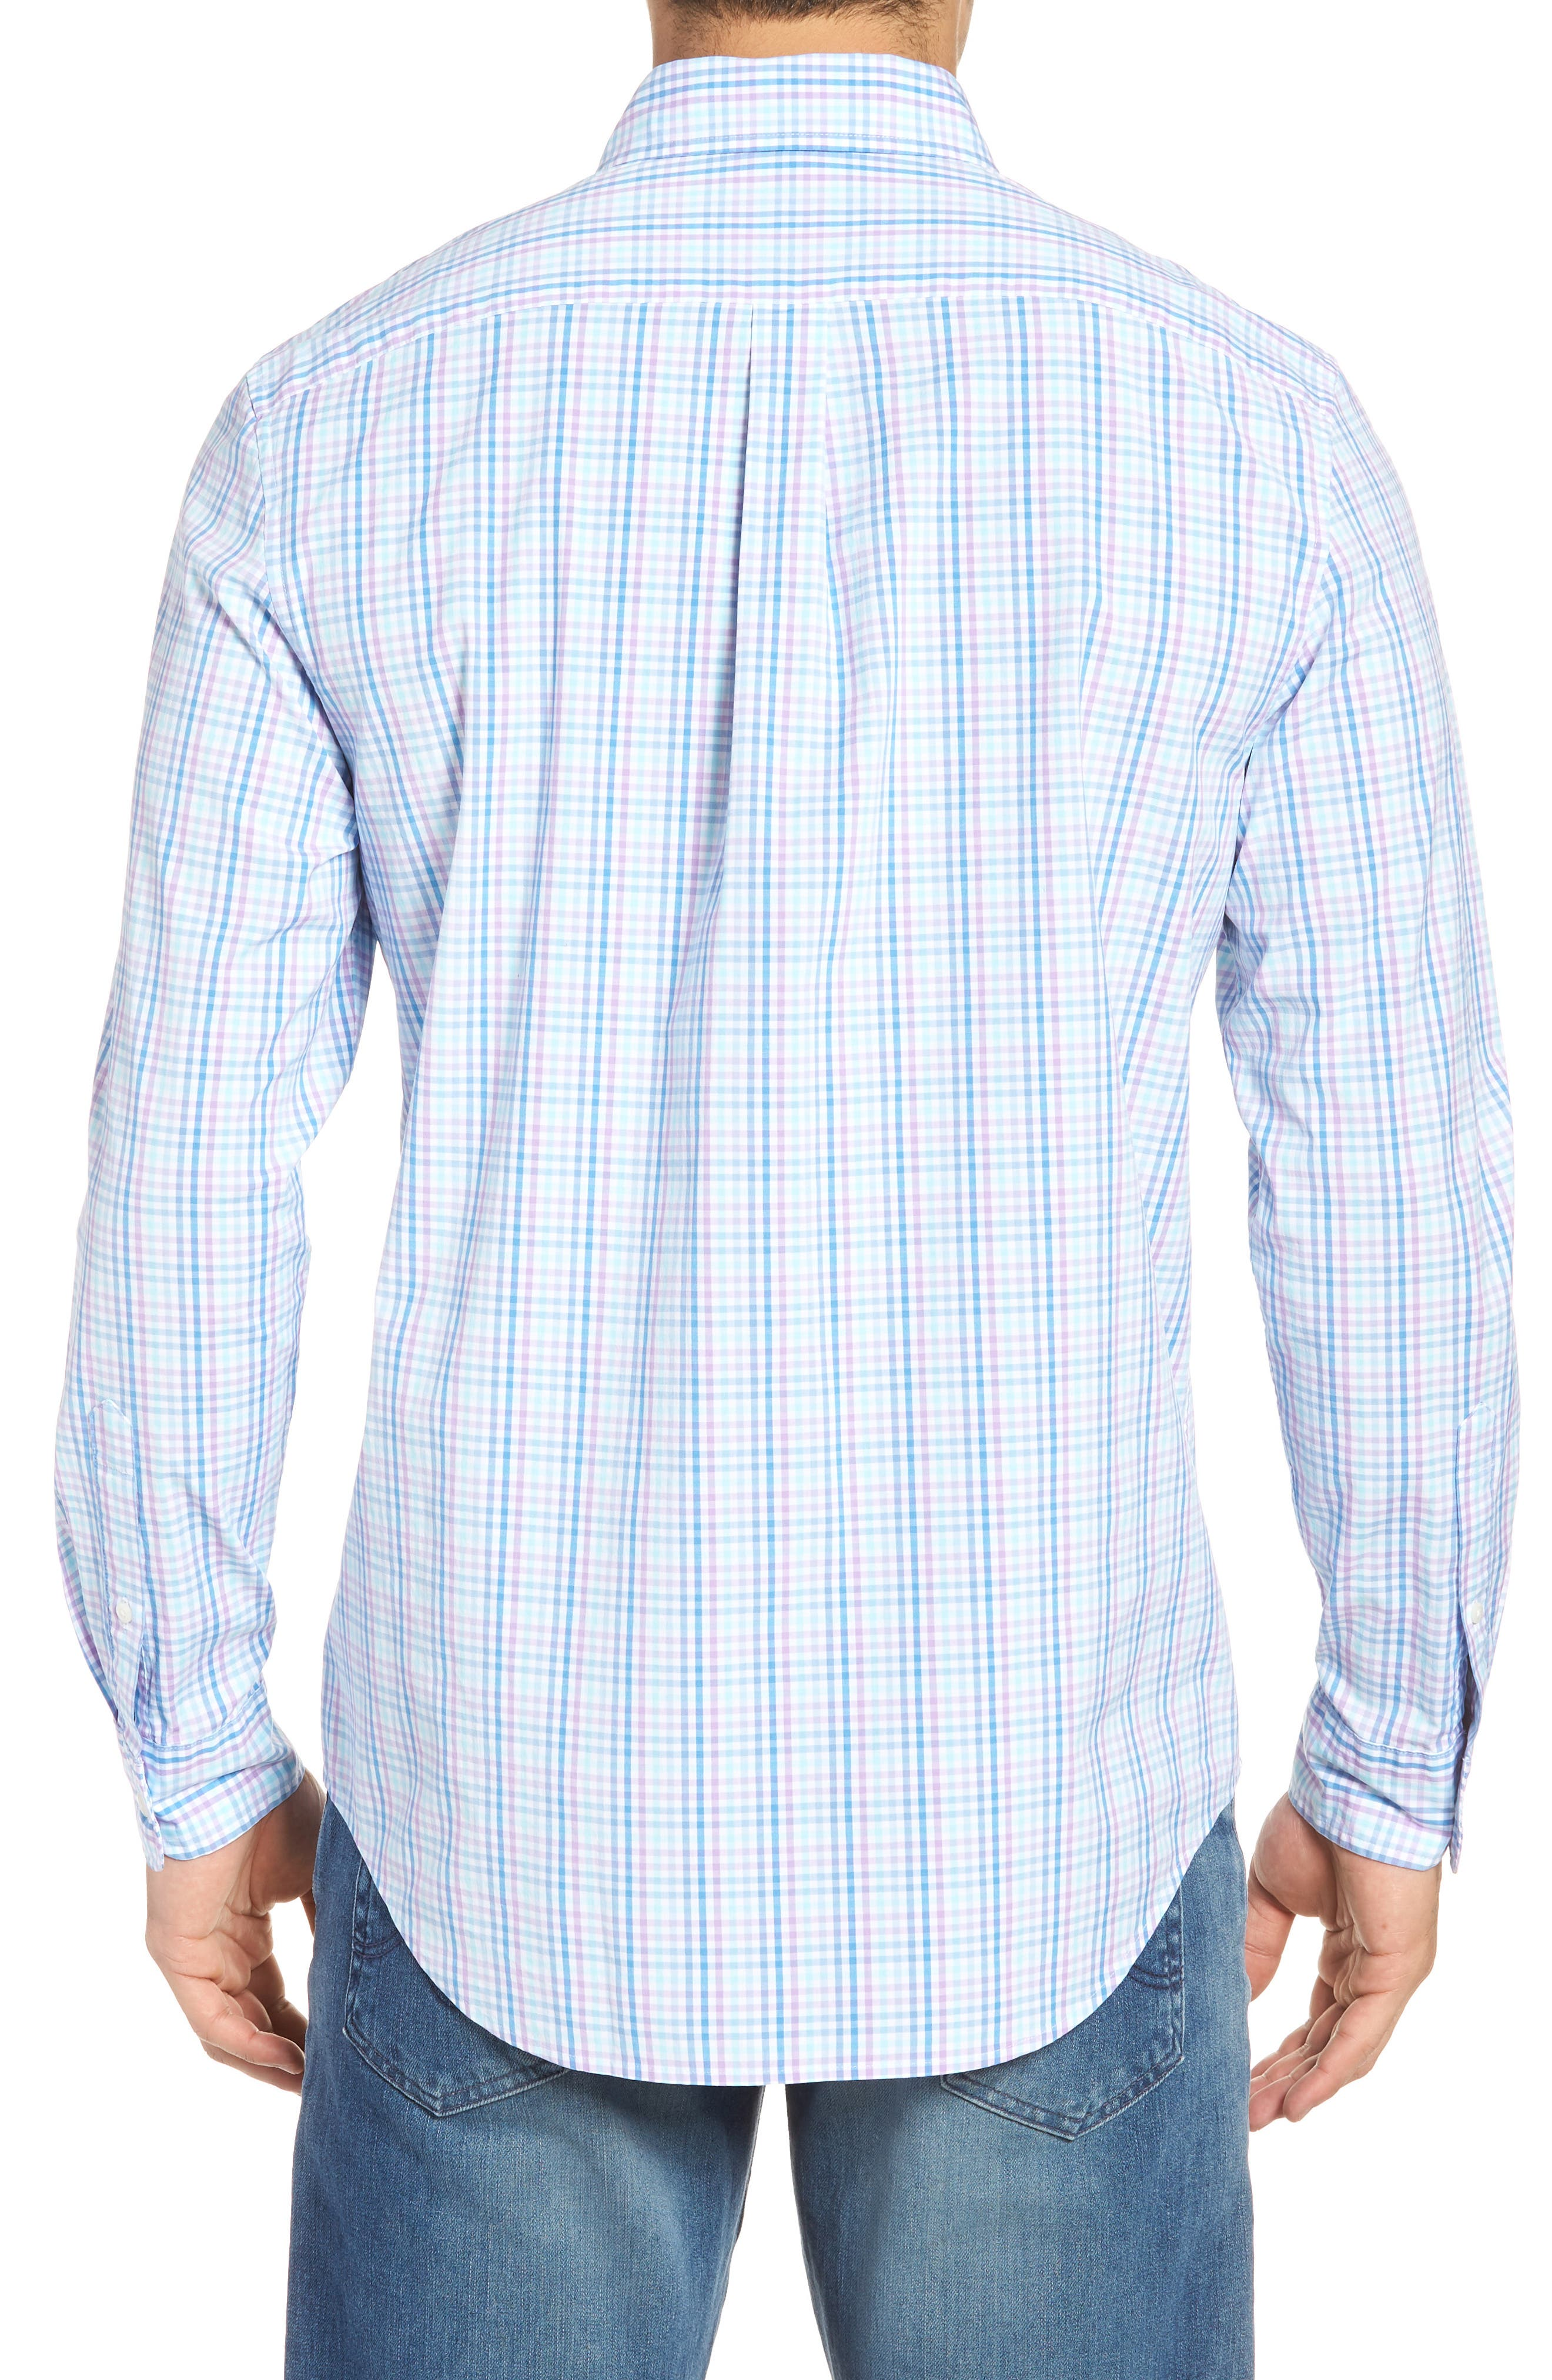 Friendly Island Classic Fit Stretch Check Sport Shirt,                             Alternate thumbnail 2, color,